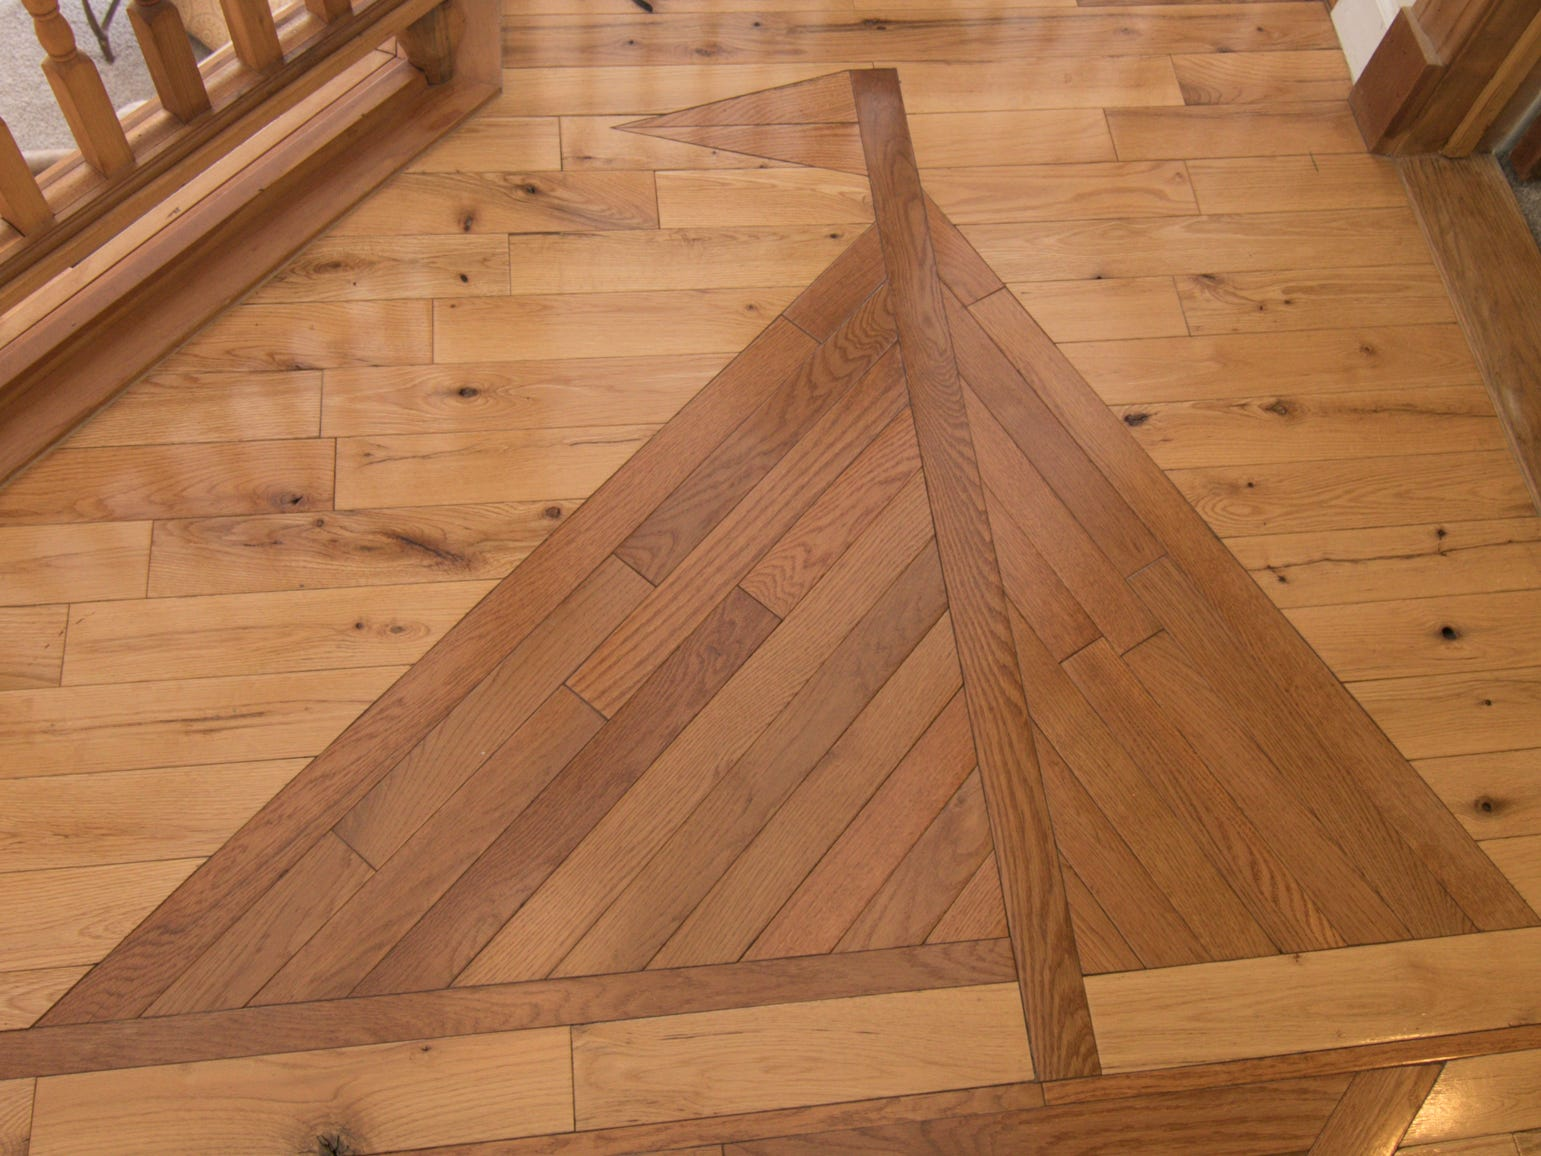 A sailboat image is inlaid into the hardwood floor of the Olmsted home on Patterson Lake, shown Thursday, March 7, 2019.